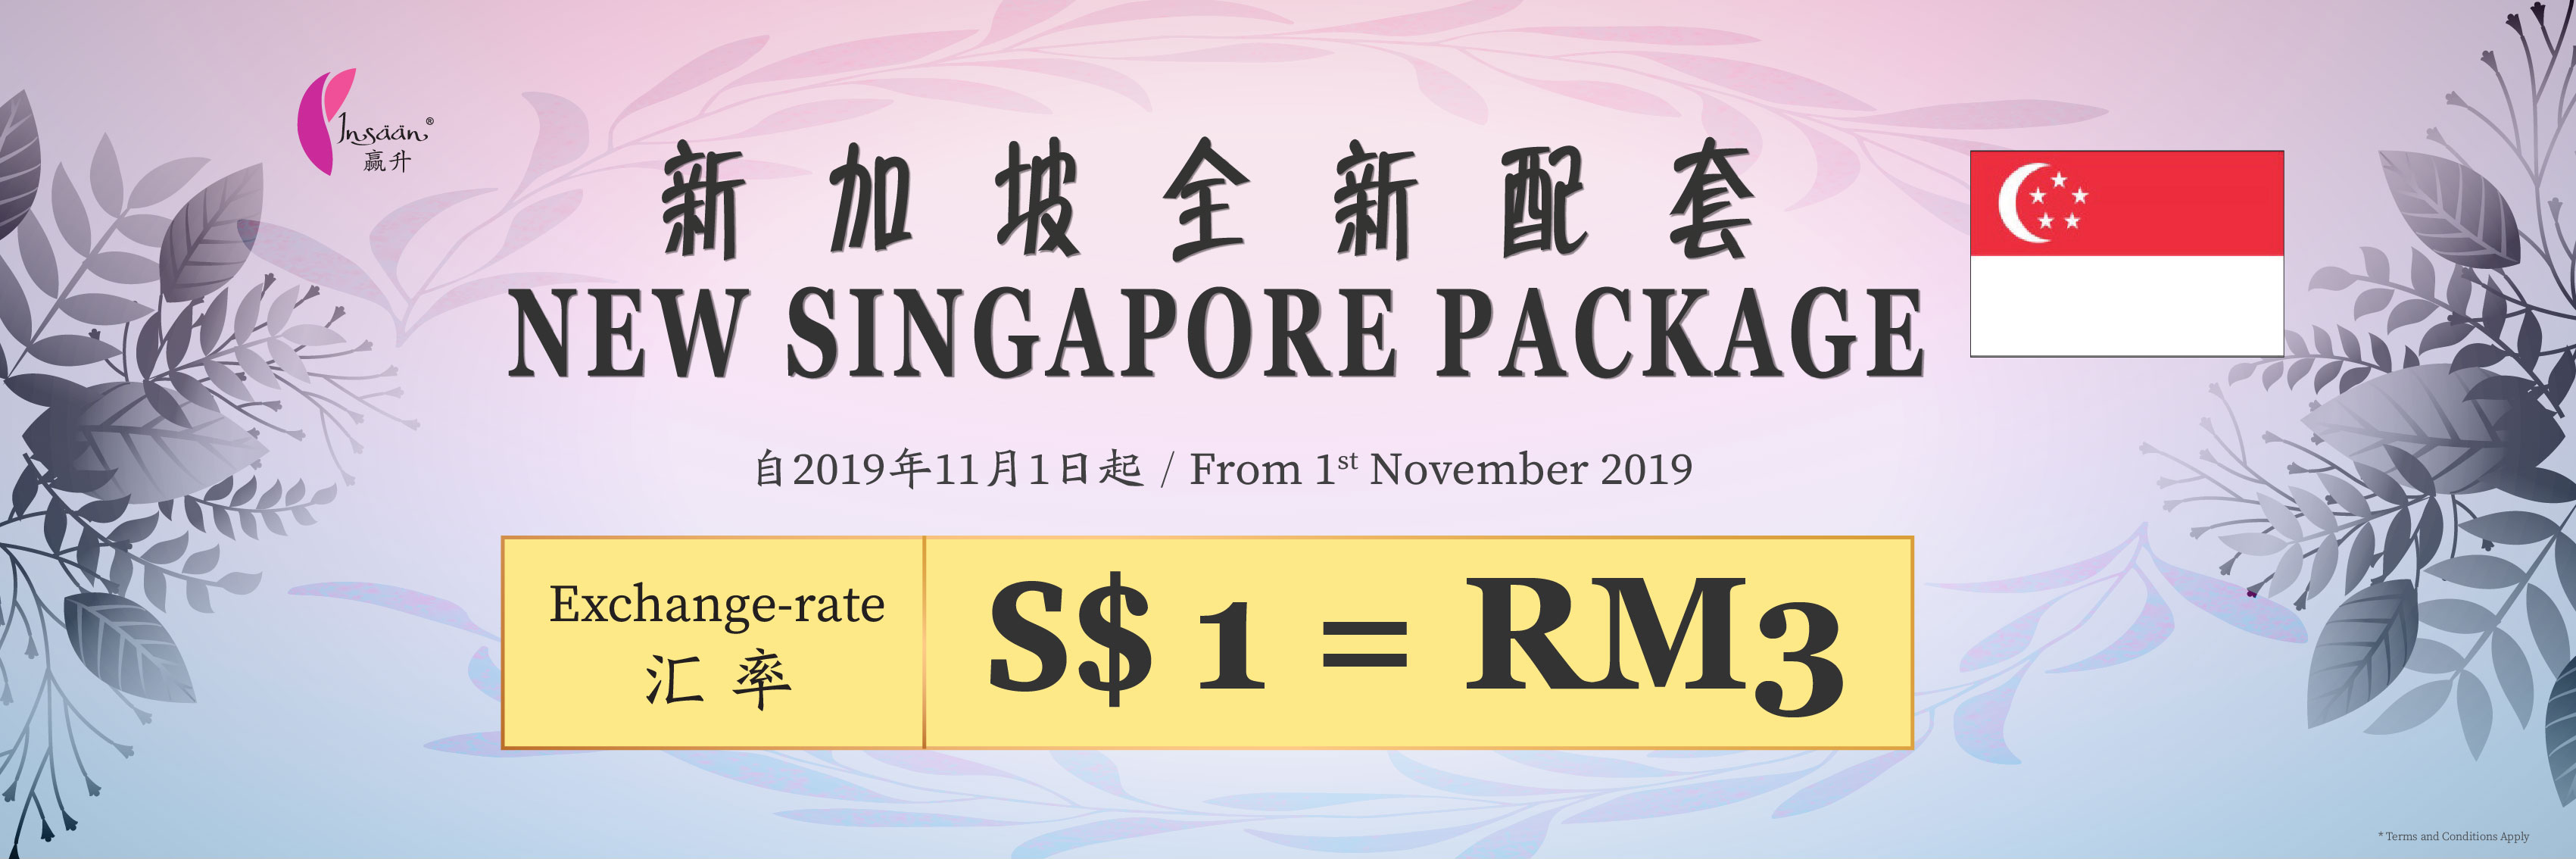 New Singapore Package